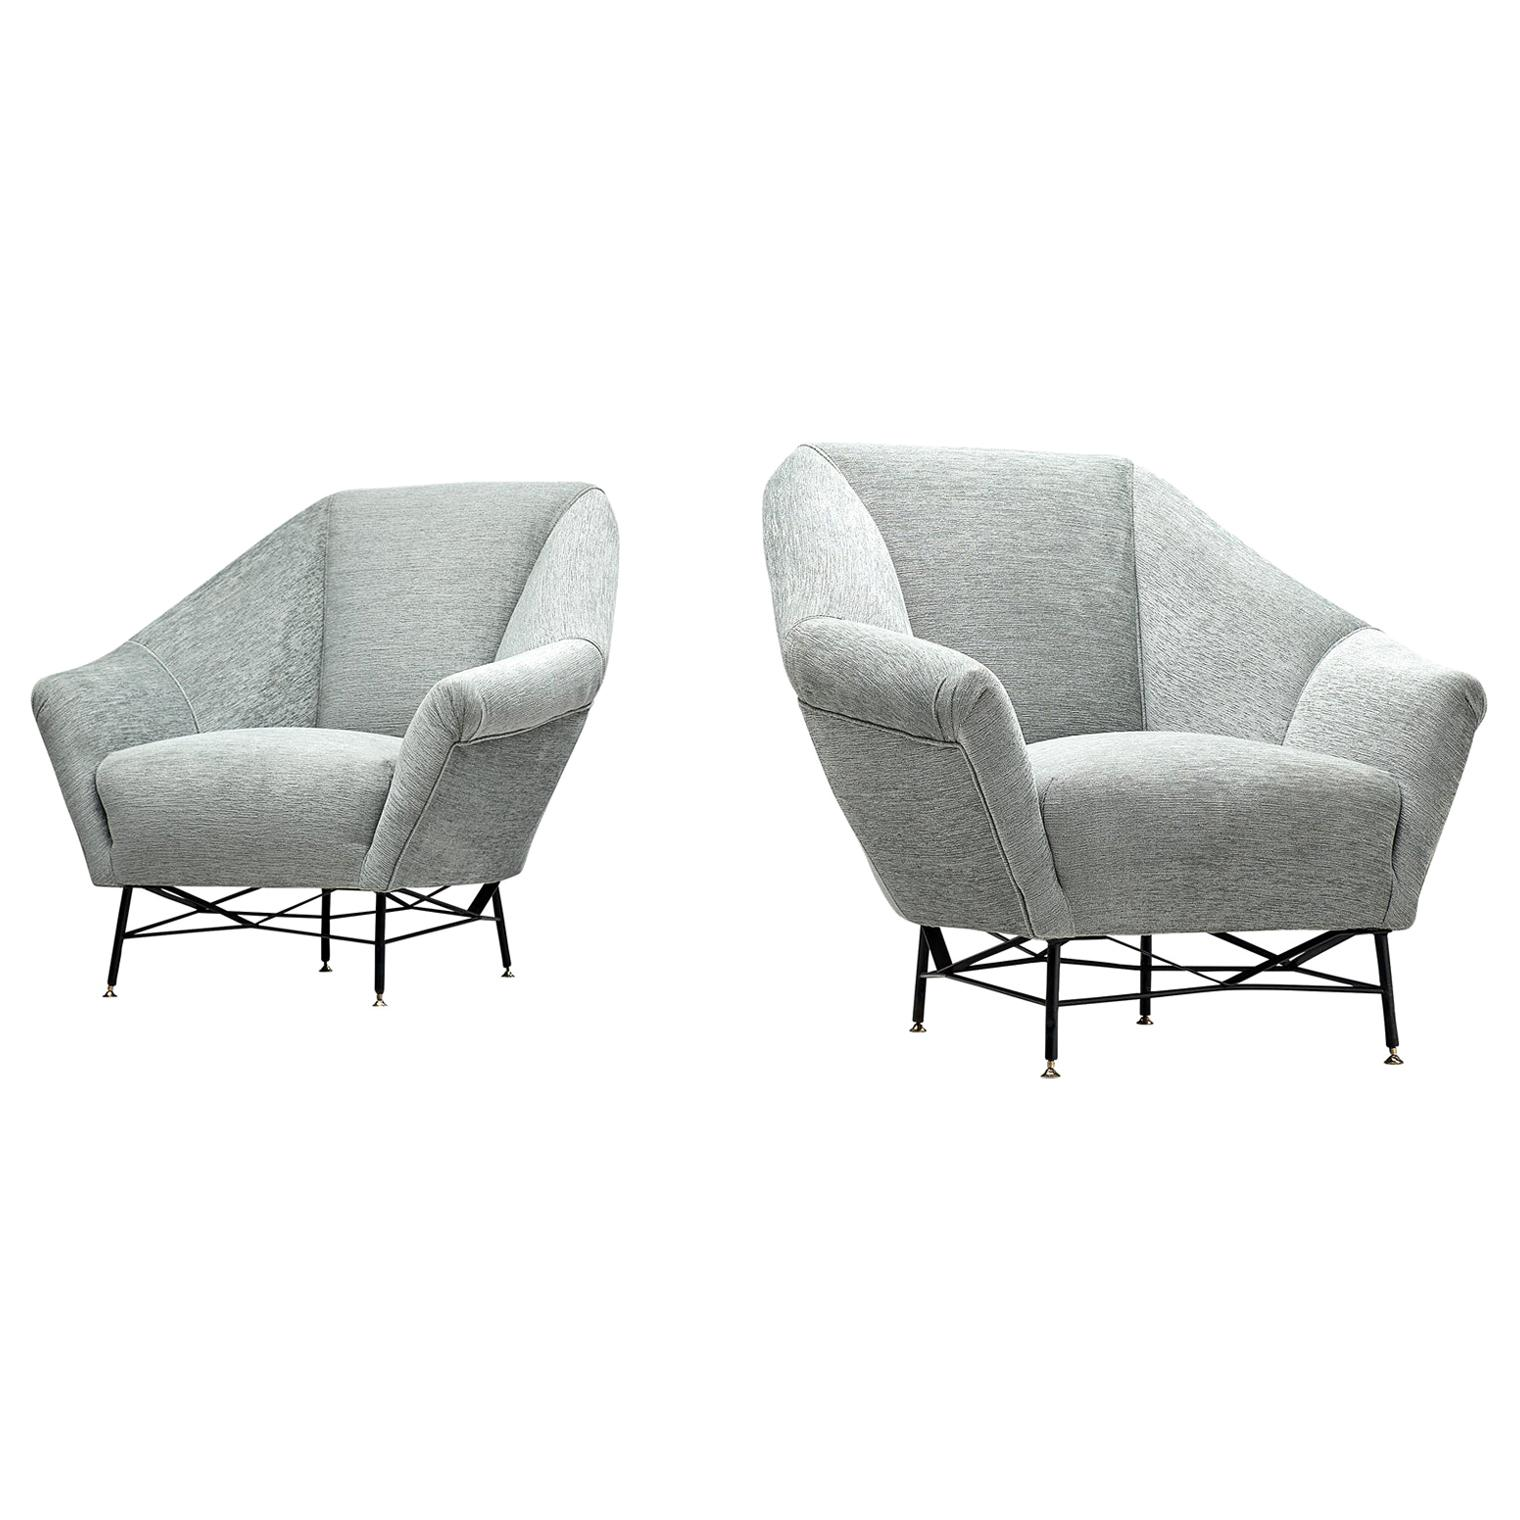 Pair of Italian Lounge Chairs in Grey Upholstery, 1950s